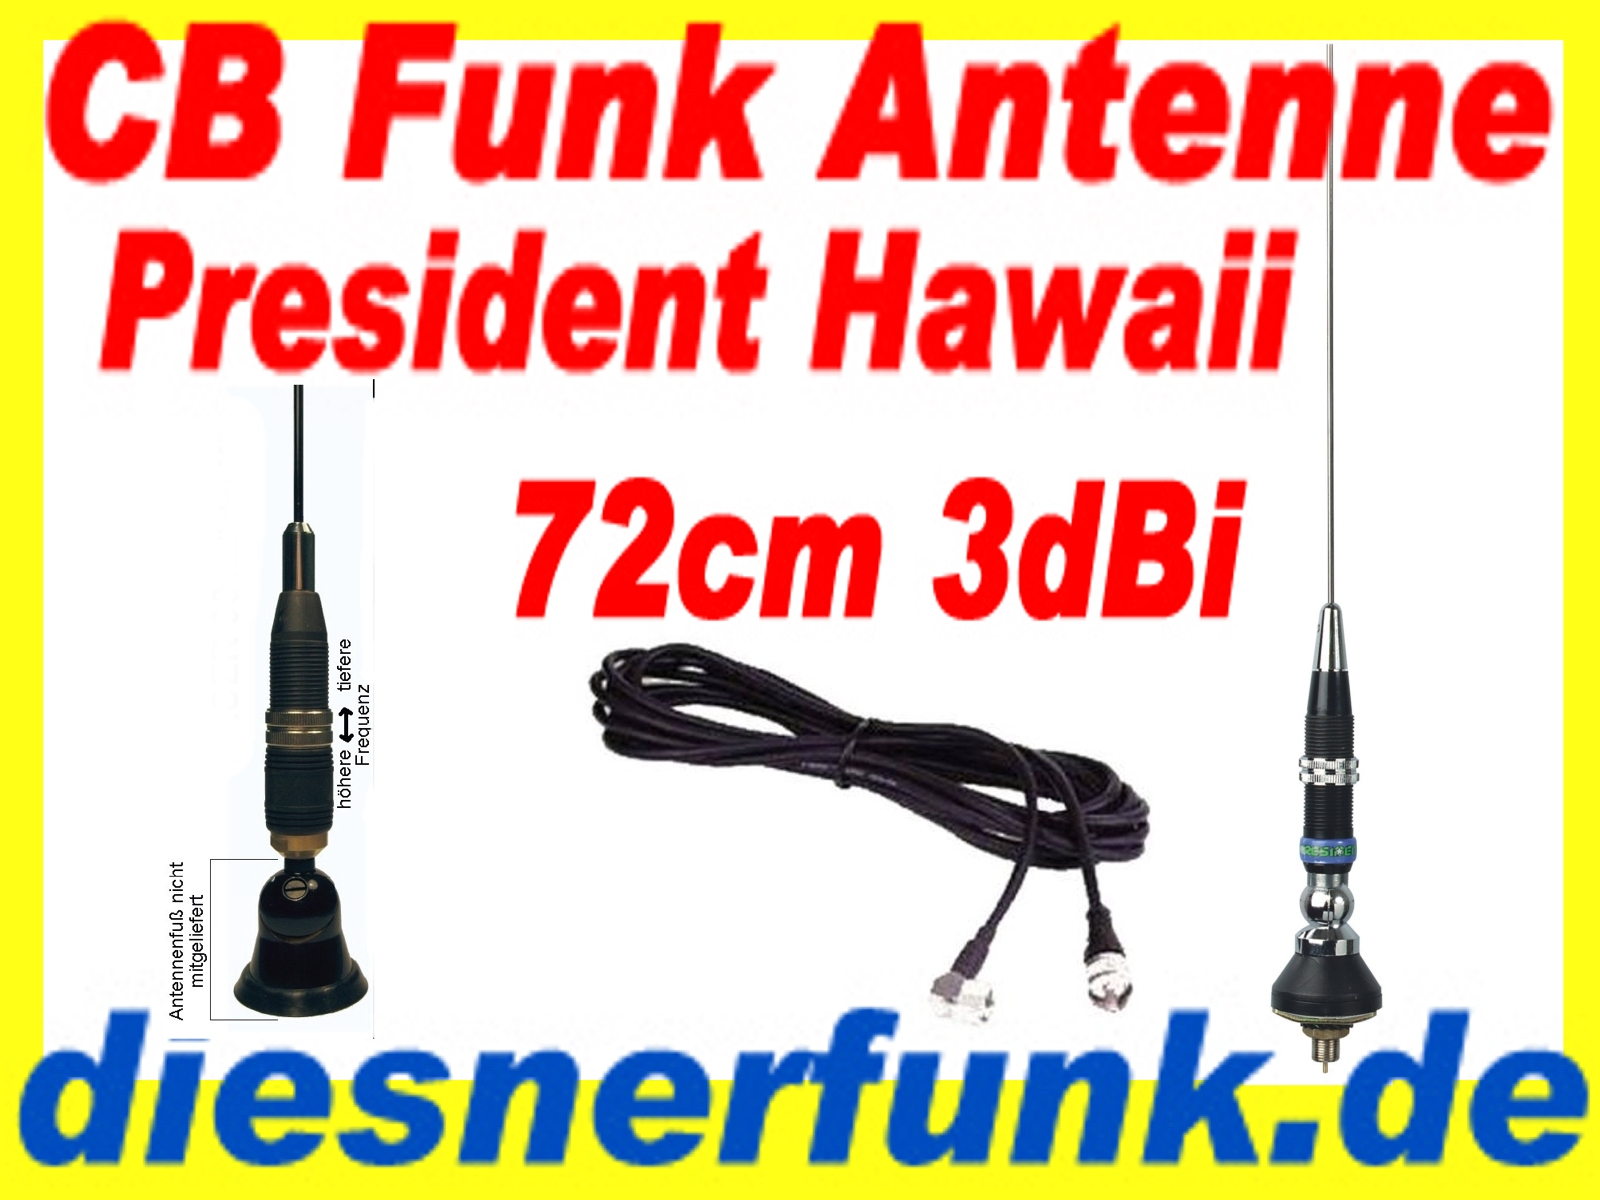 cb funk antenne president hawaii 3dbi 72cm top swr f r lkw actros volvo man tga ebay. Black Bedroom Furniture Sets. Home Design Ideas